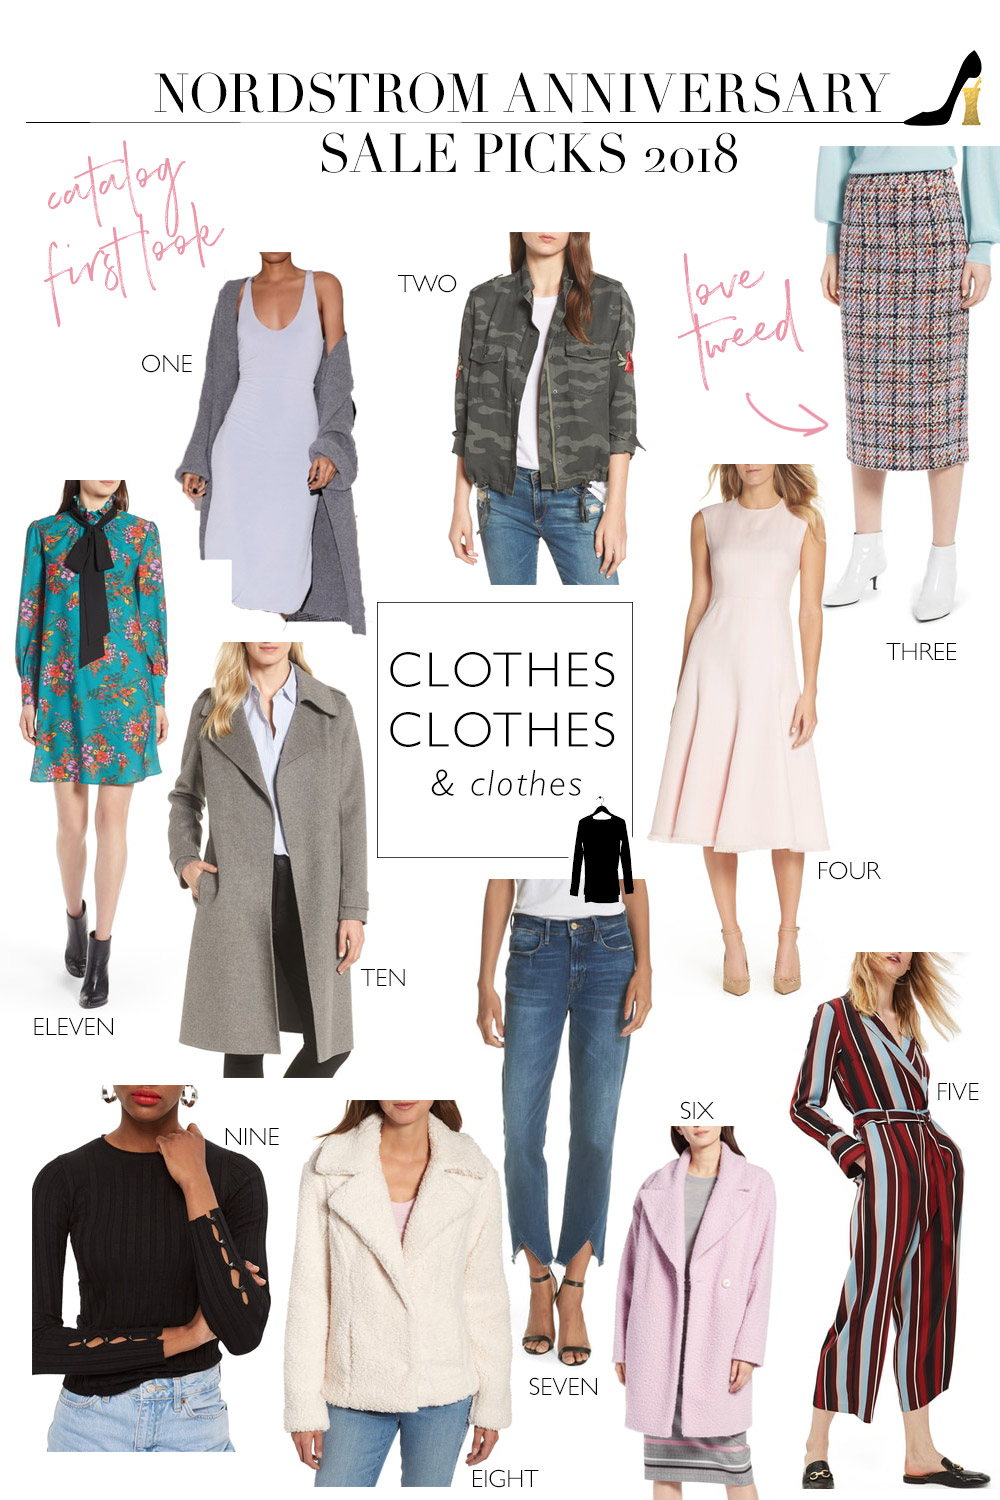 20d7173f7df1 Nordstrom-anniversary-sale-2018-catalog-first-look-picks-CLOTHES ...